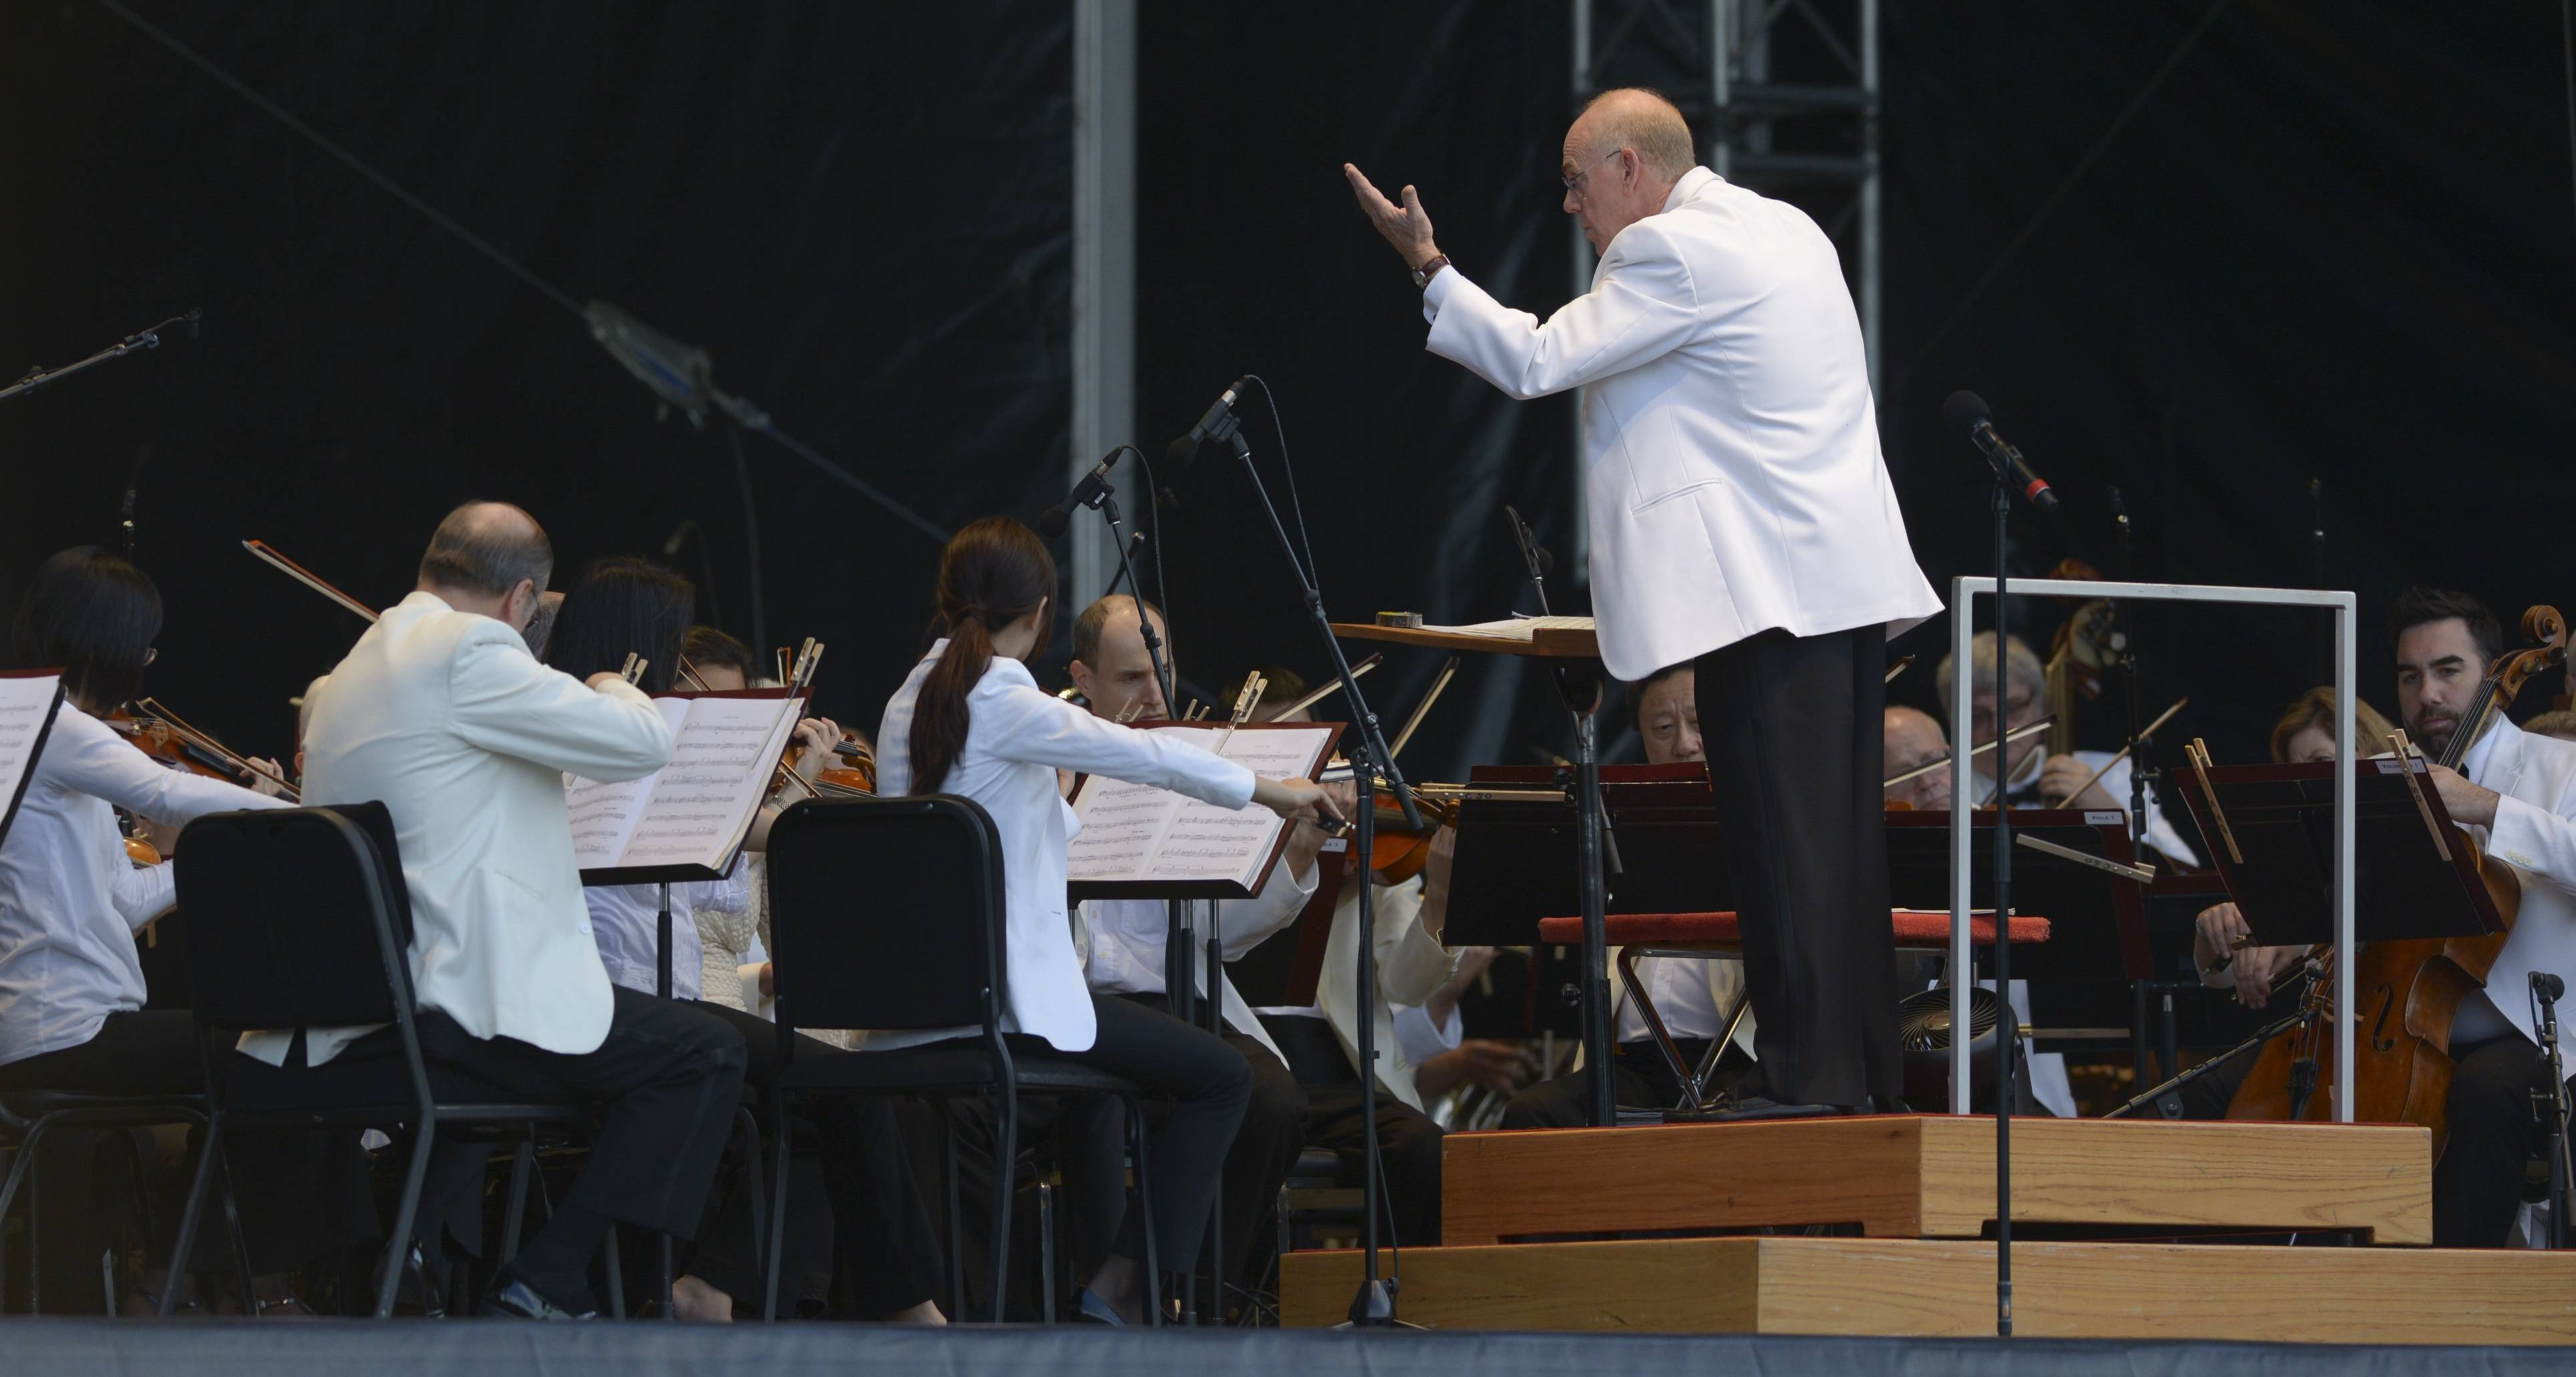 Conductor Richard Kaufaman leads the Chicago Symphony Orchestra as they perform the first of three nights at The Morton Arboretum in Lisle.